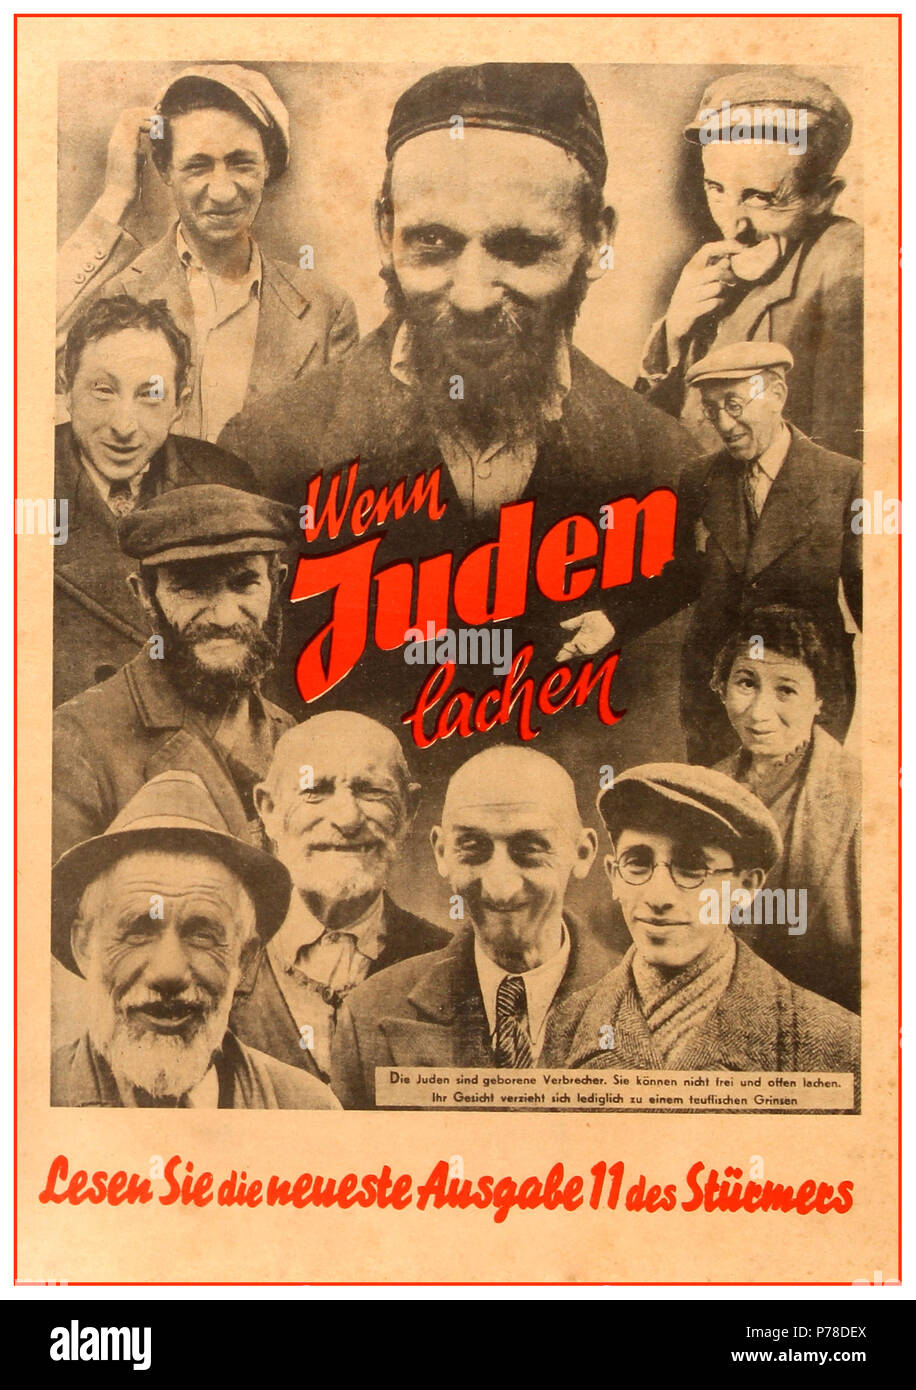 1930's NSDAP Anti-semitic anti jewish Nazi Germany political propaganda poster translated as  'The Jews are born criminals. They are unable to laugh freely and openly. Their faces can only form a devilish grin. 'Portraits of ten men and one woman, all laughing or smiling, encircle the words 'Wenn Juden lachen' [When Jews laugh]. - Stock Image